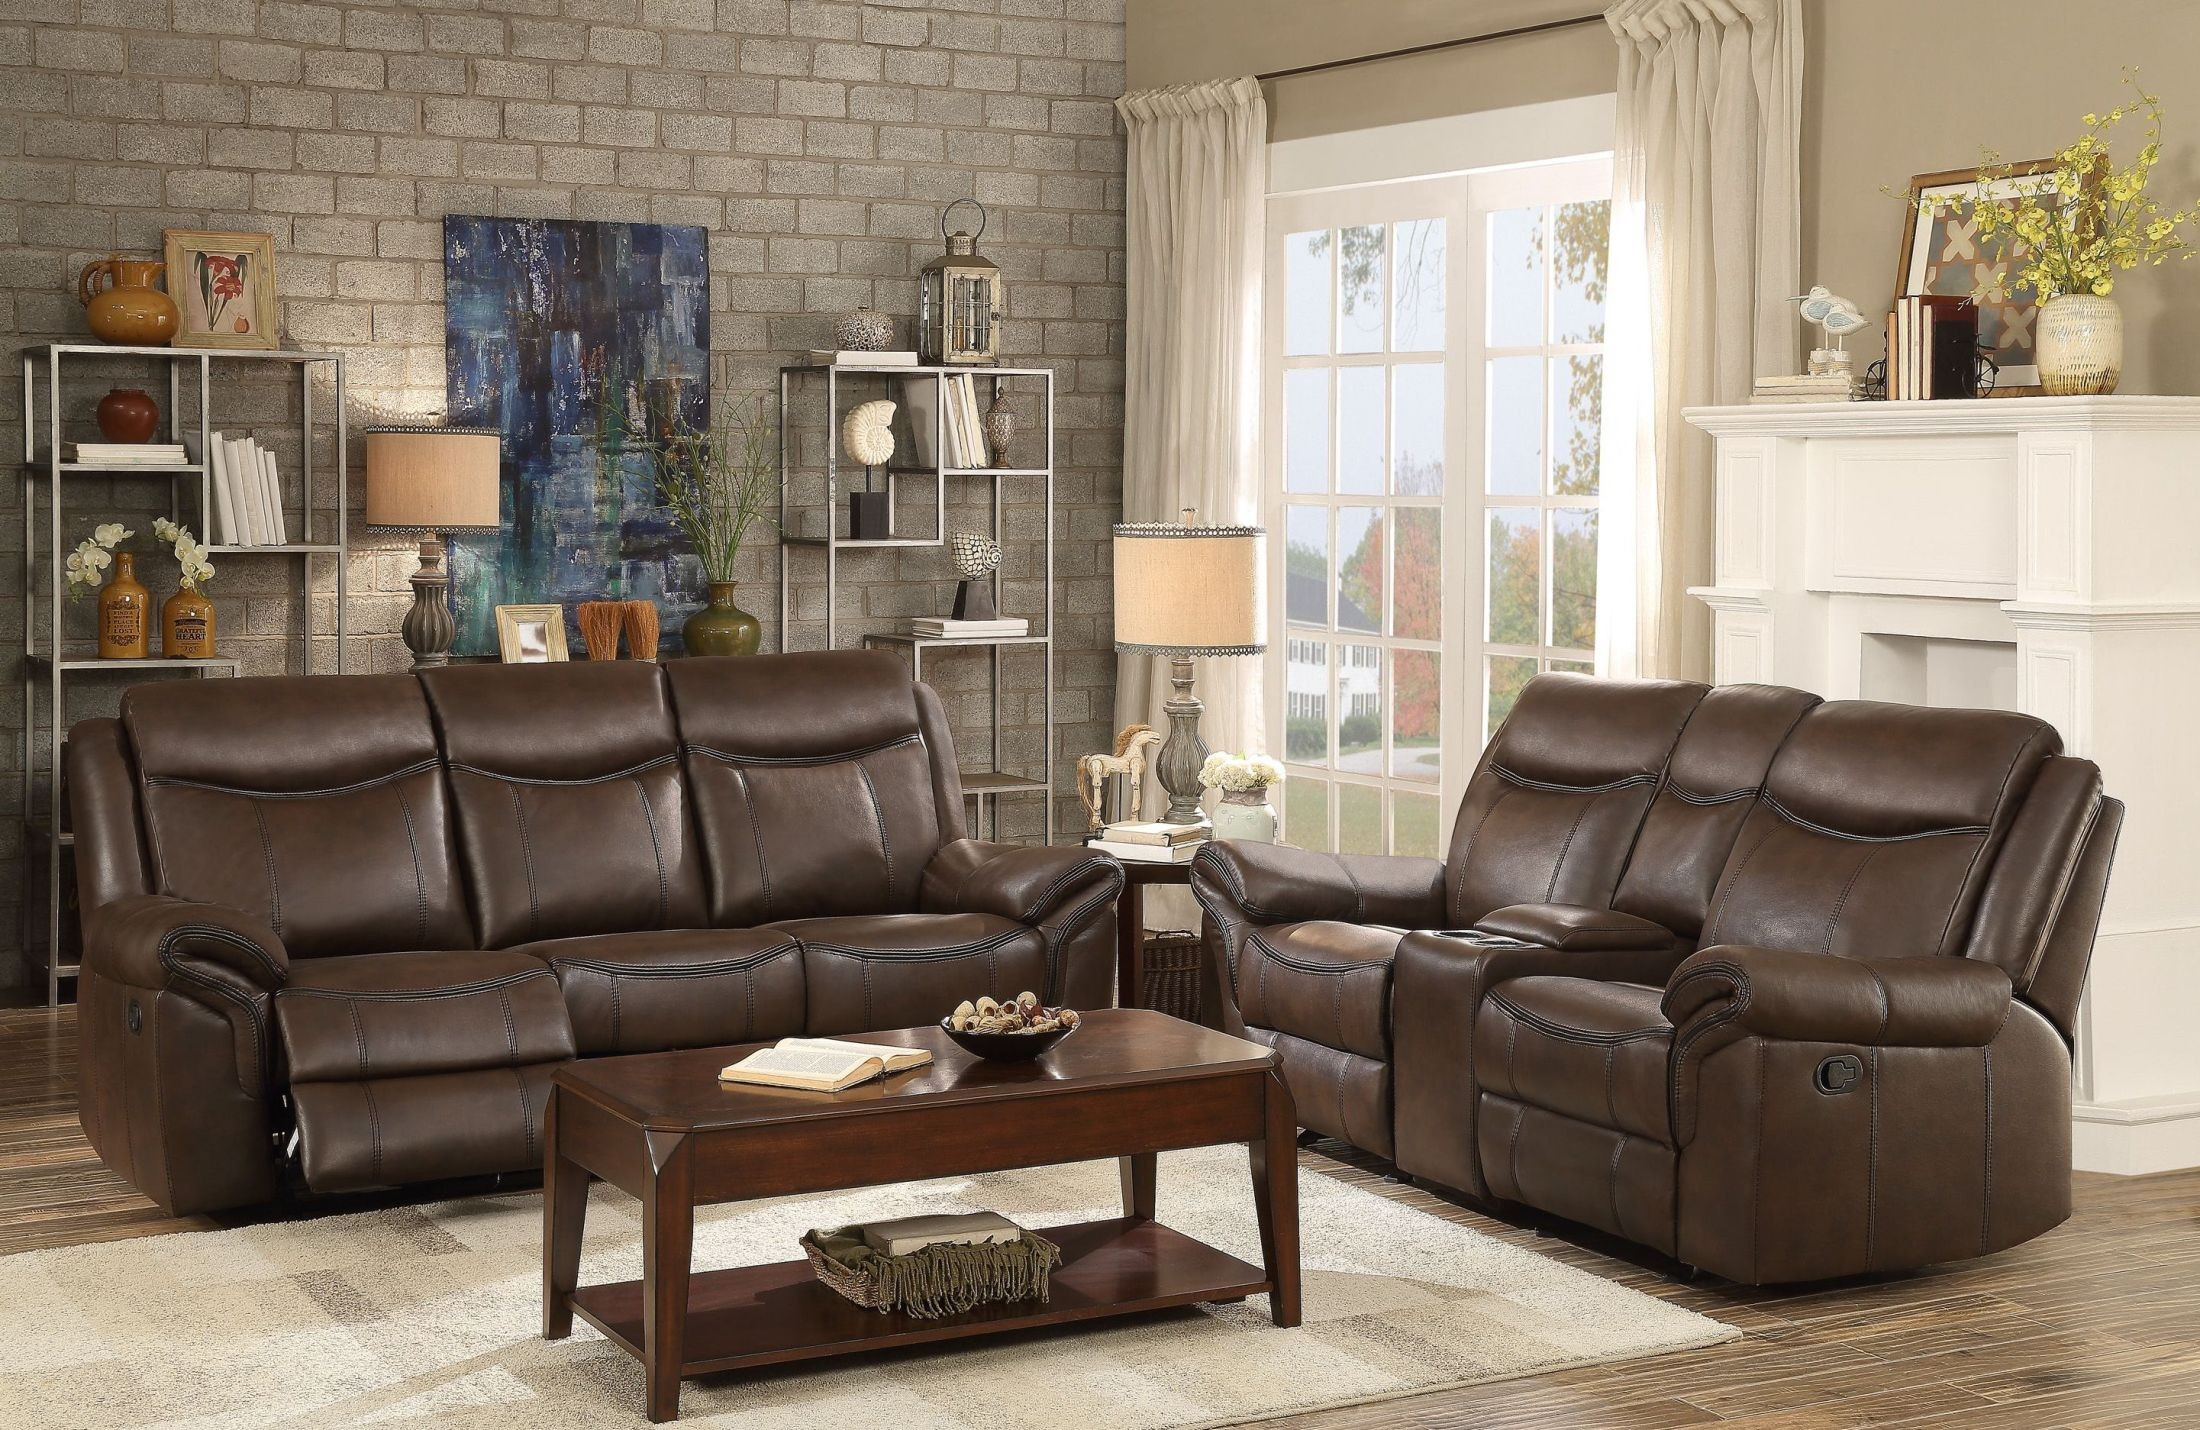 Aram dark brown double reclining living room set from for Dark brown living room set